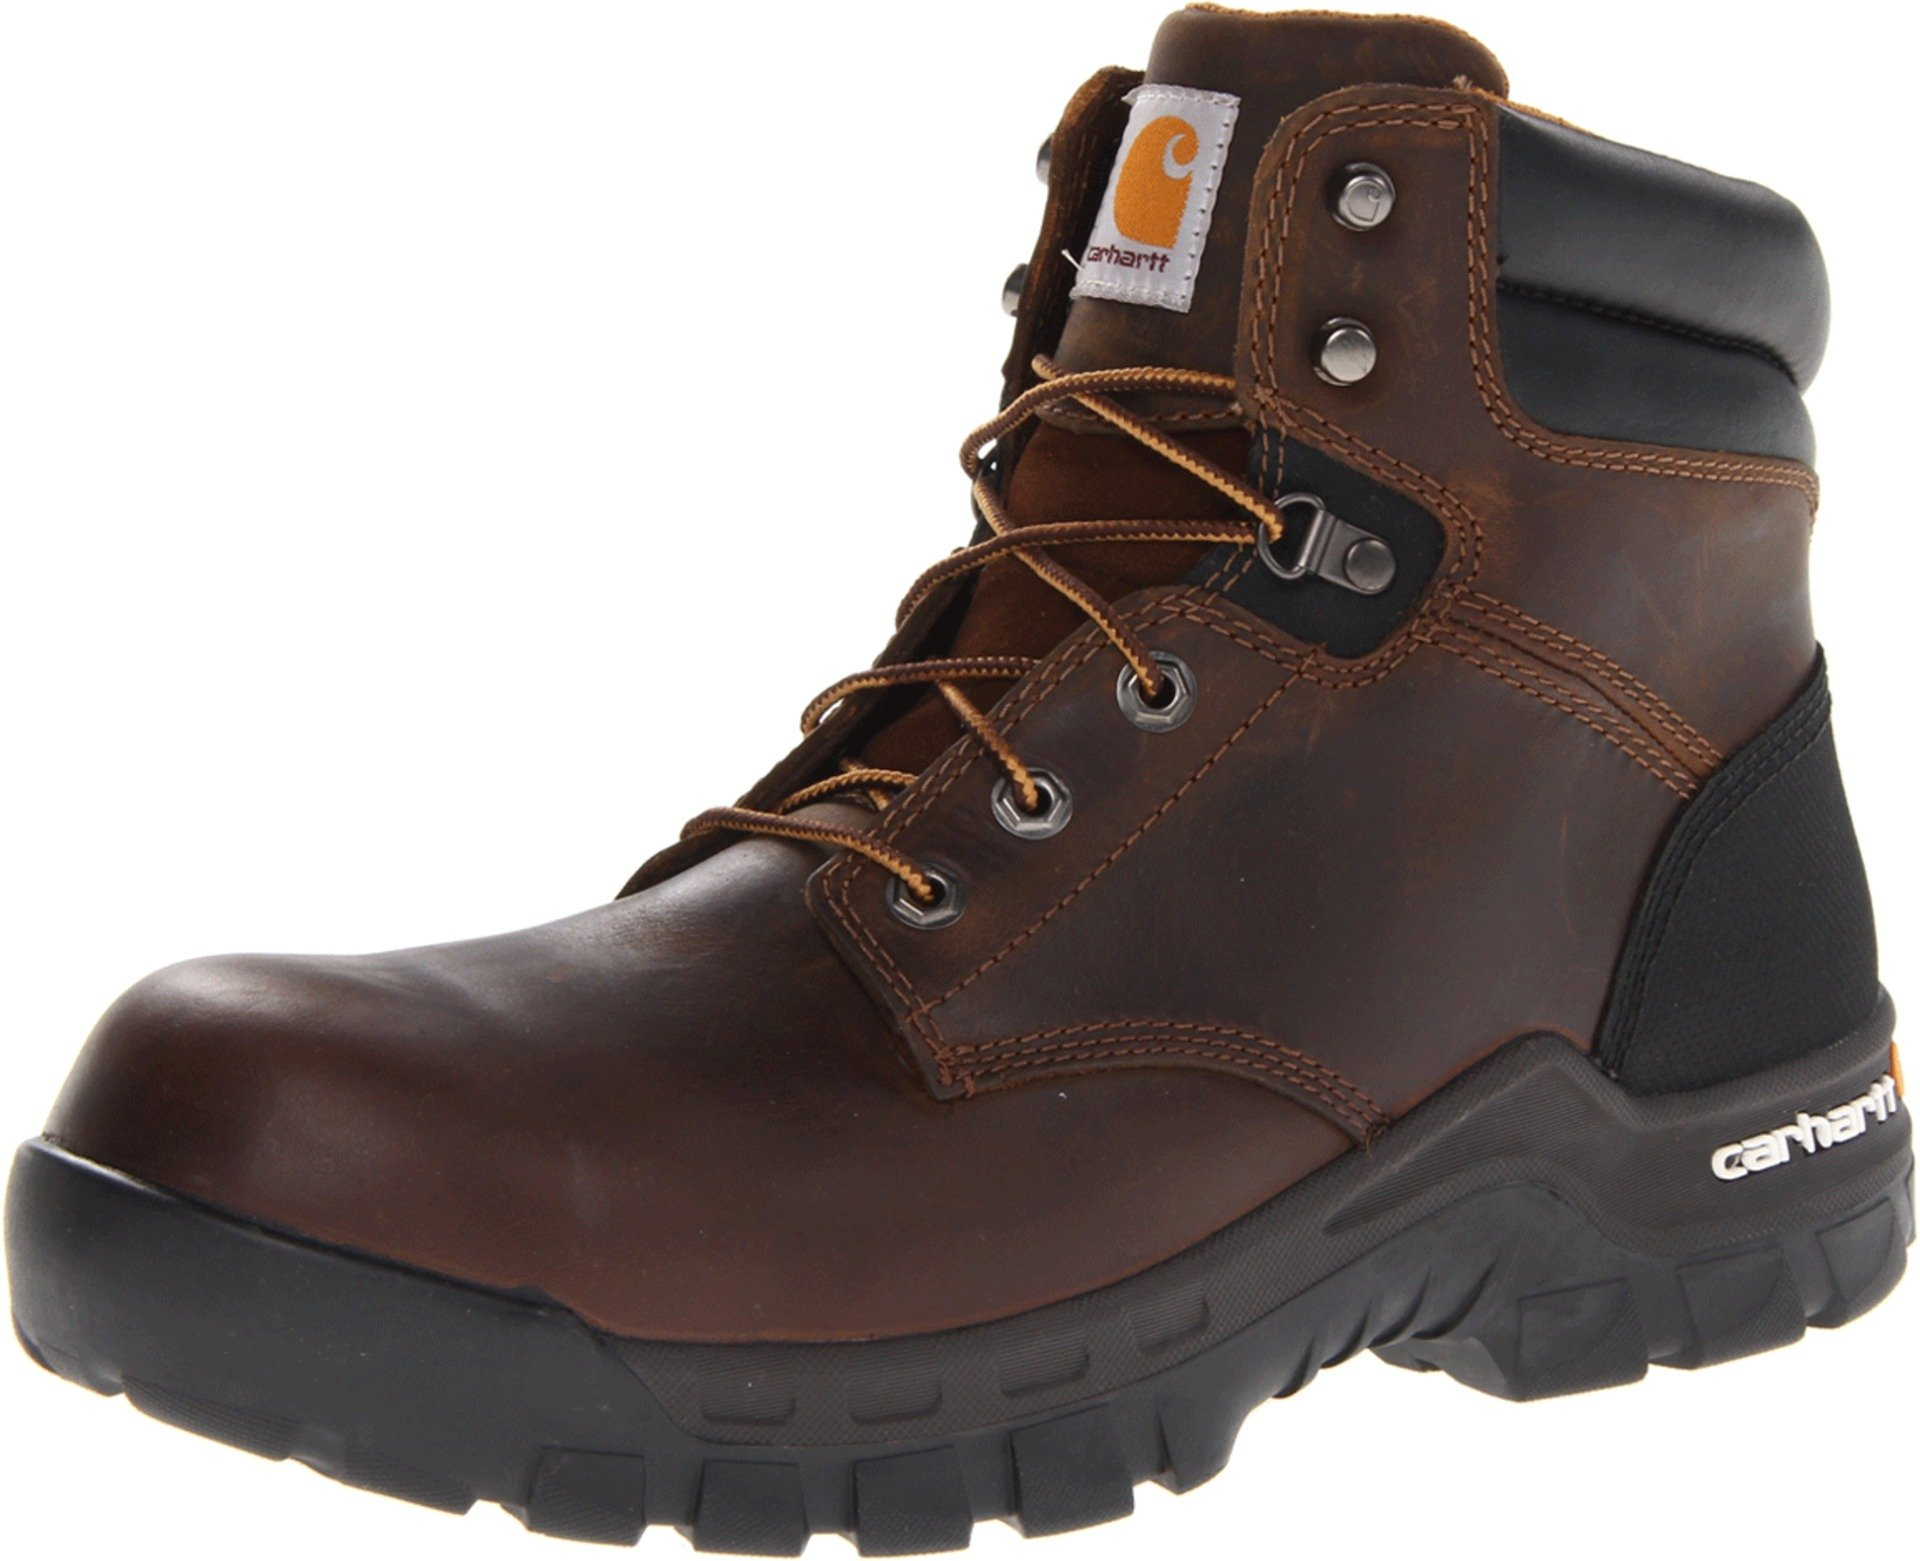 Carhartt Men's 6'' Rugged Flex Waterproof Breathable Composite Toe Leather Work Boot CMF6366,Brown Oil Tanned Leather,11 M US by Carhartt